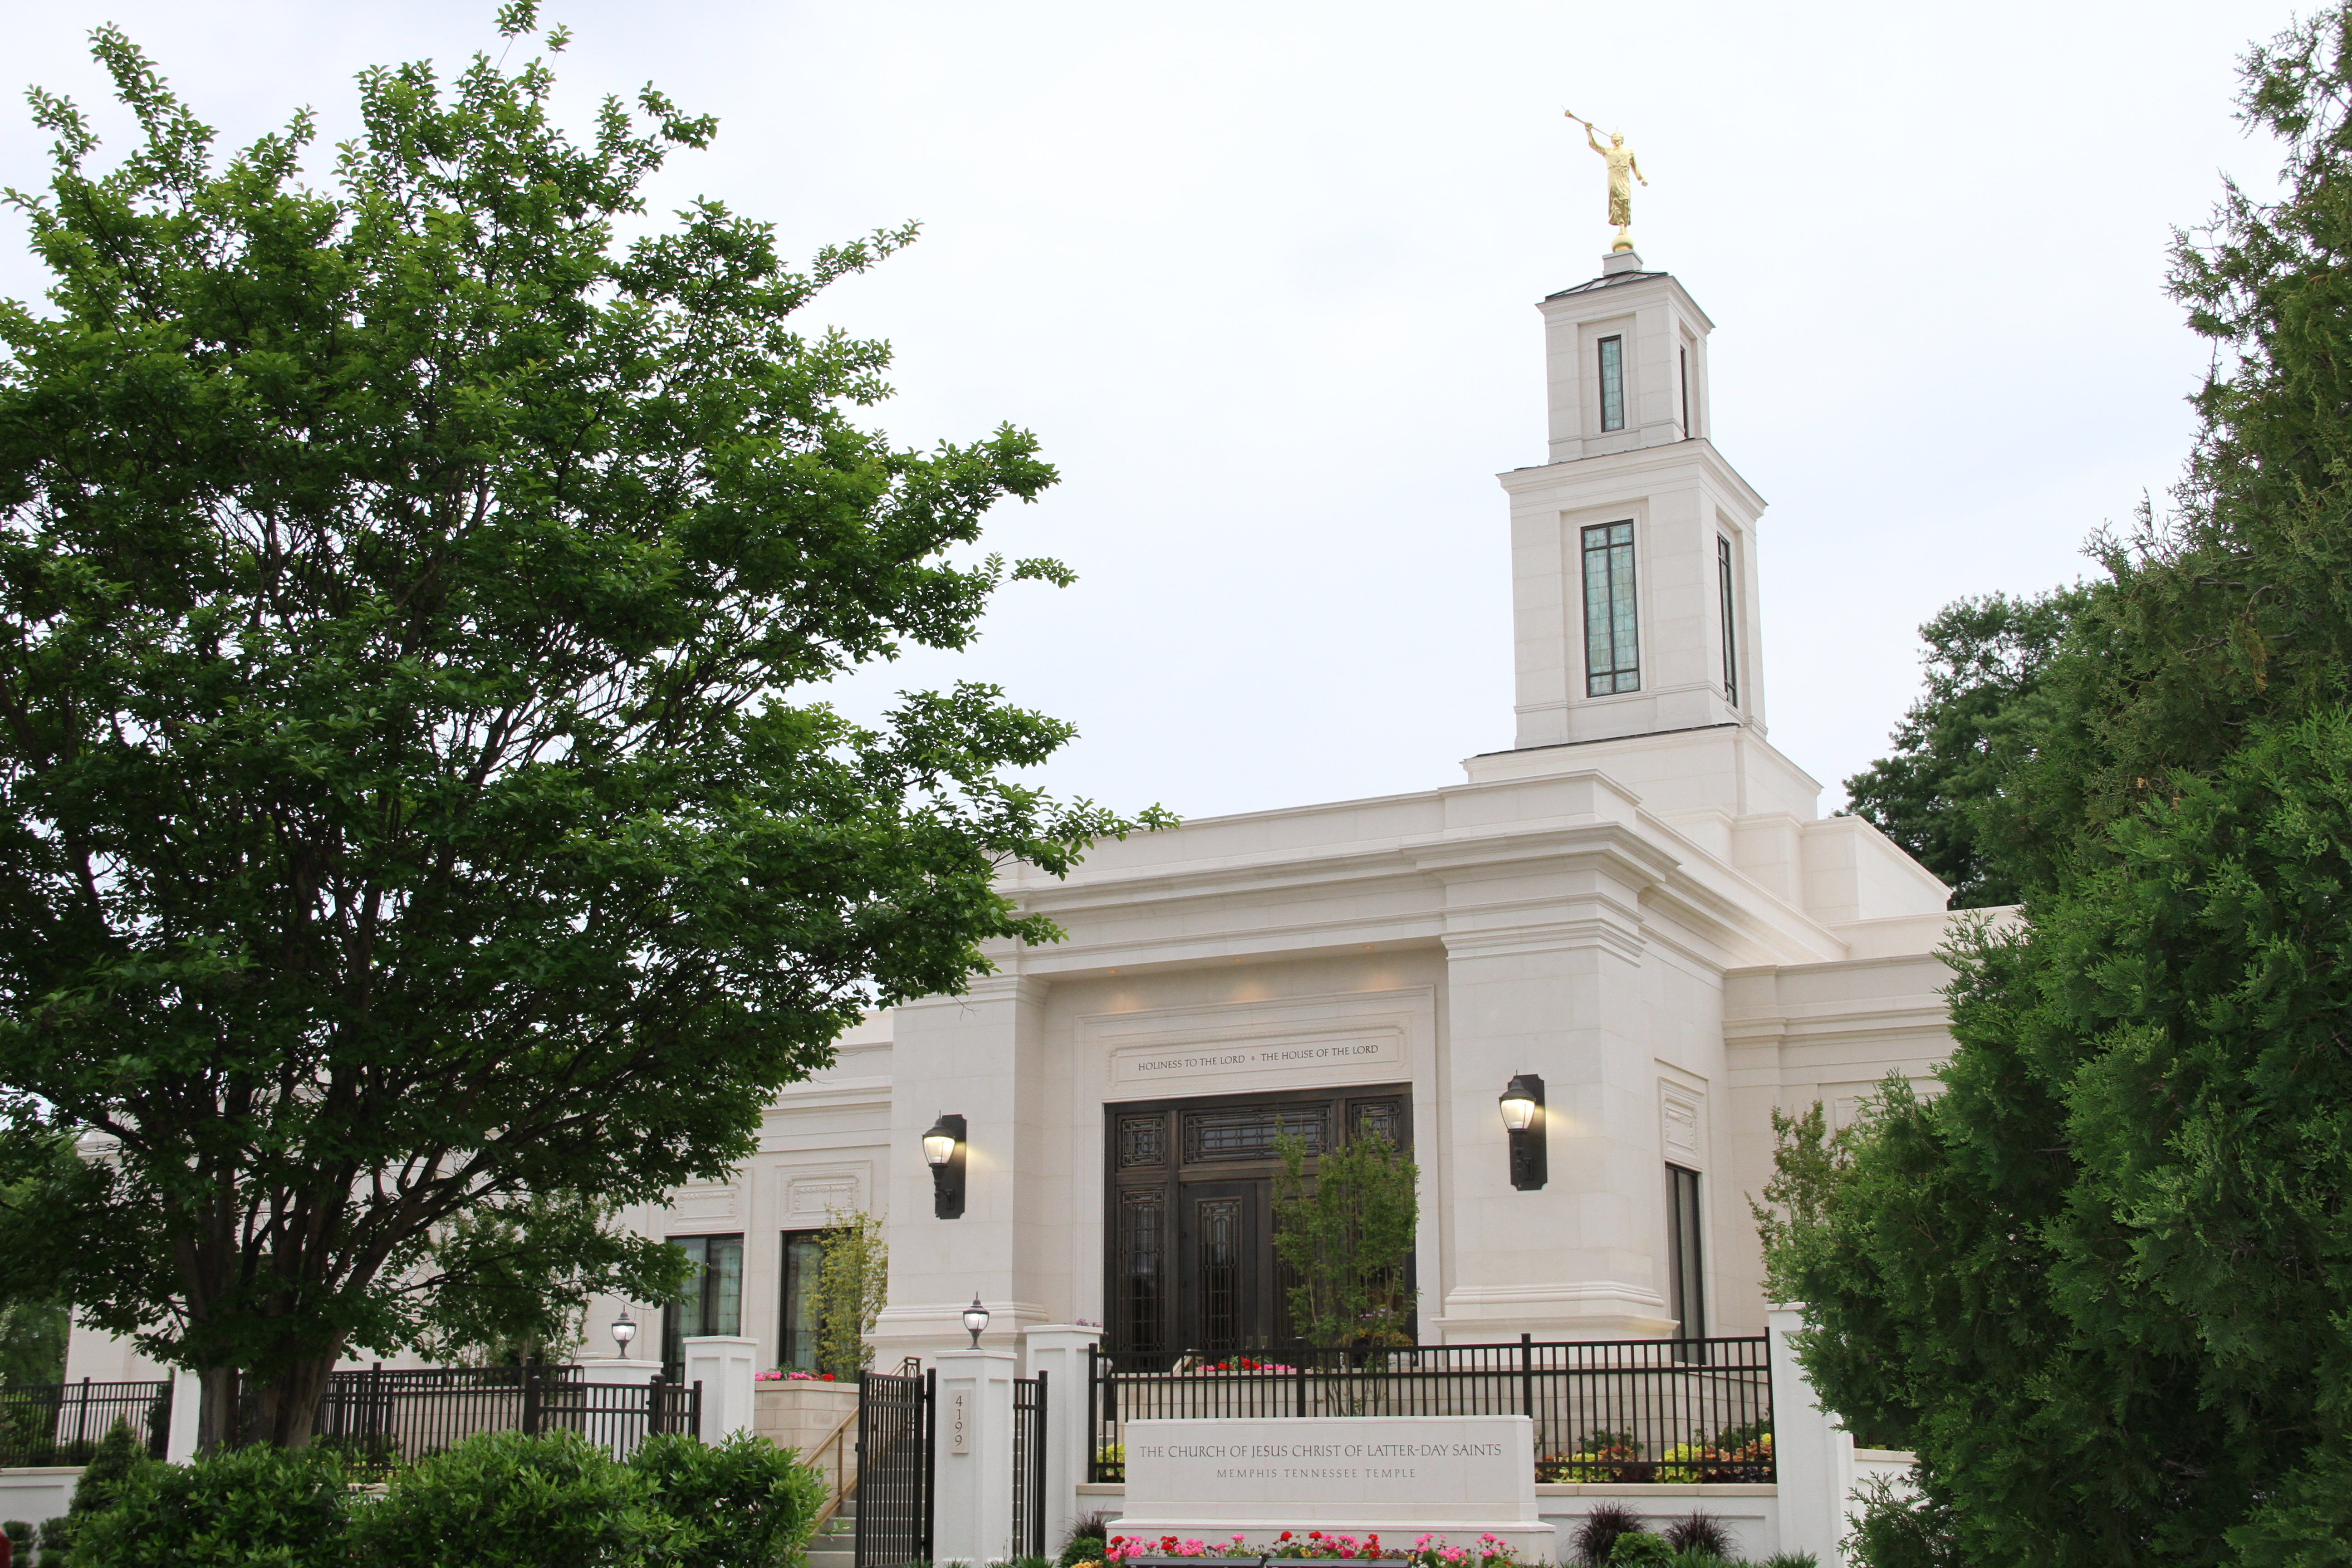 The Memphis Tennessee Temple prior to its rededication on May 3, 2019. The tower was raised 10 feet as part of the 18 months renovation.